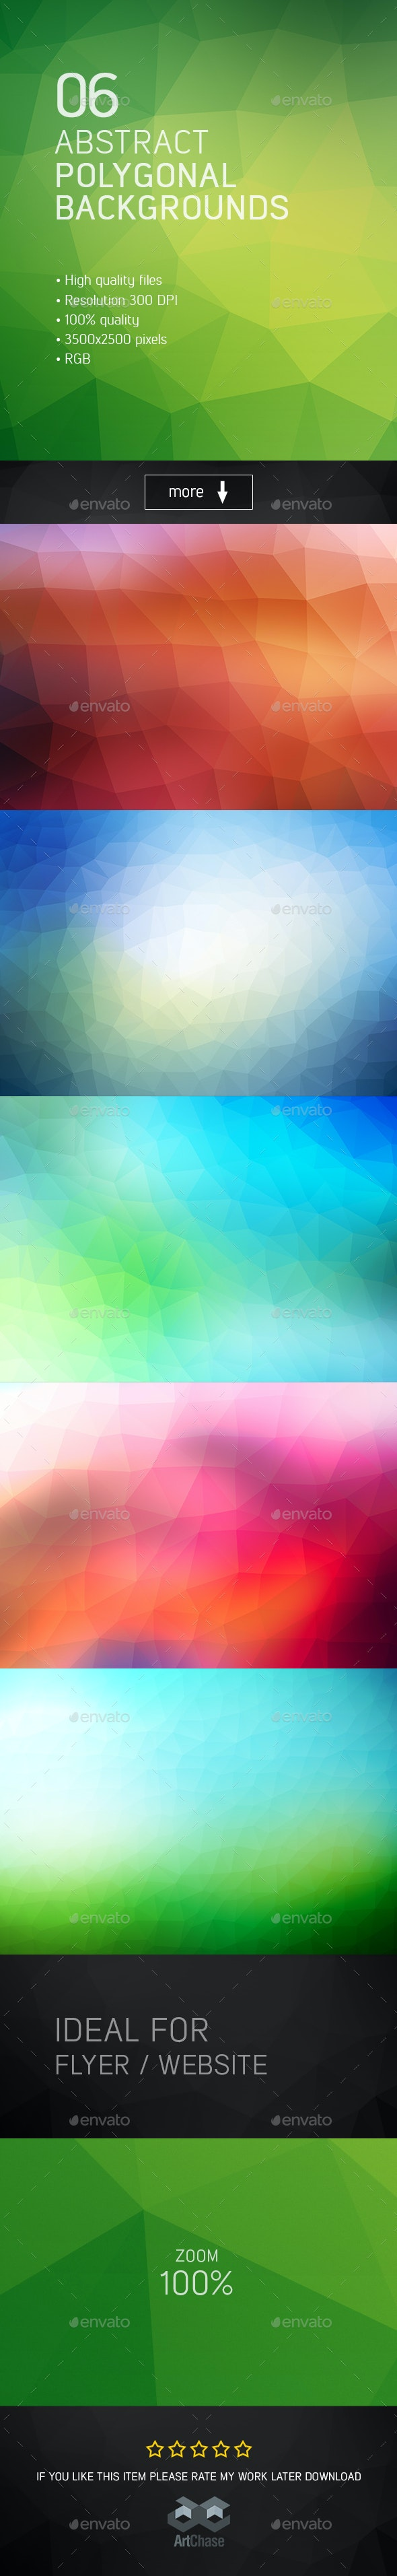 Abstract Polygonal Backgrounds - Abstract Backgrounds